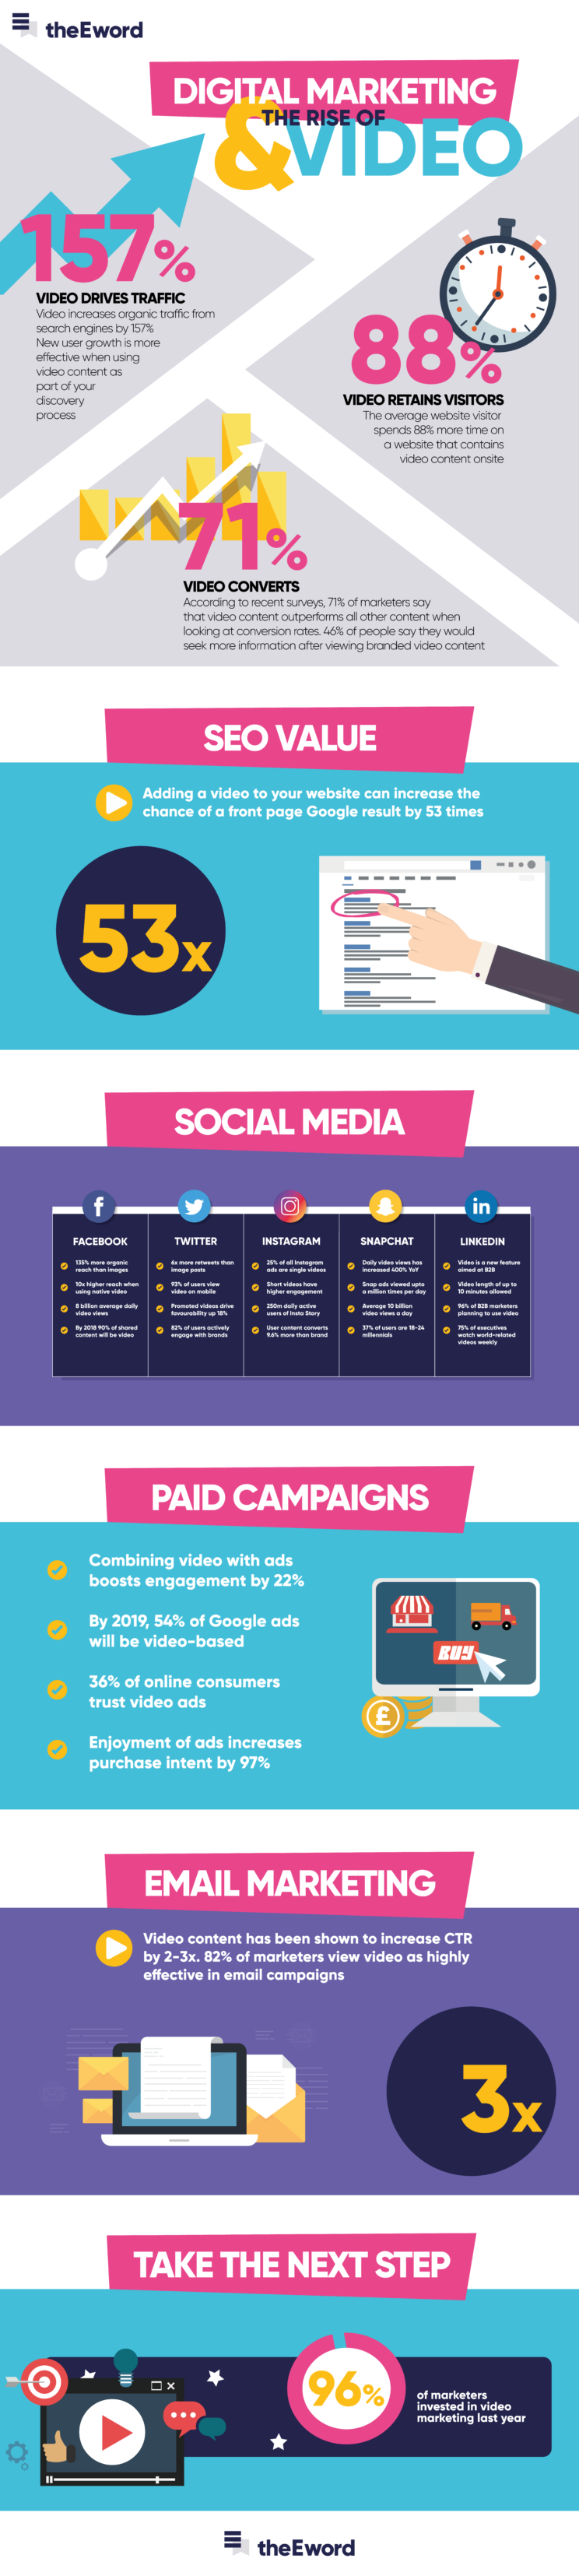 Digital Marketing and the Rise of Video [Infographic]   Social Media Today